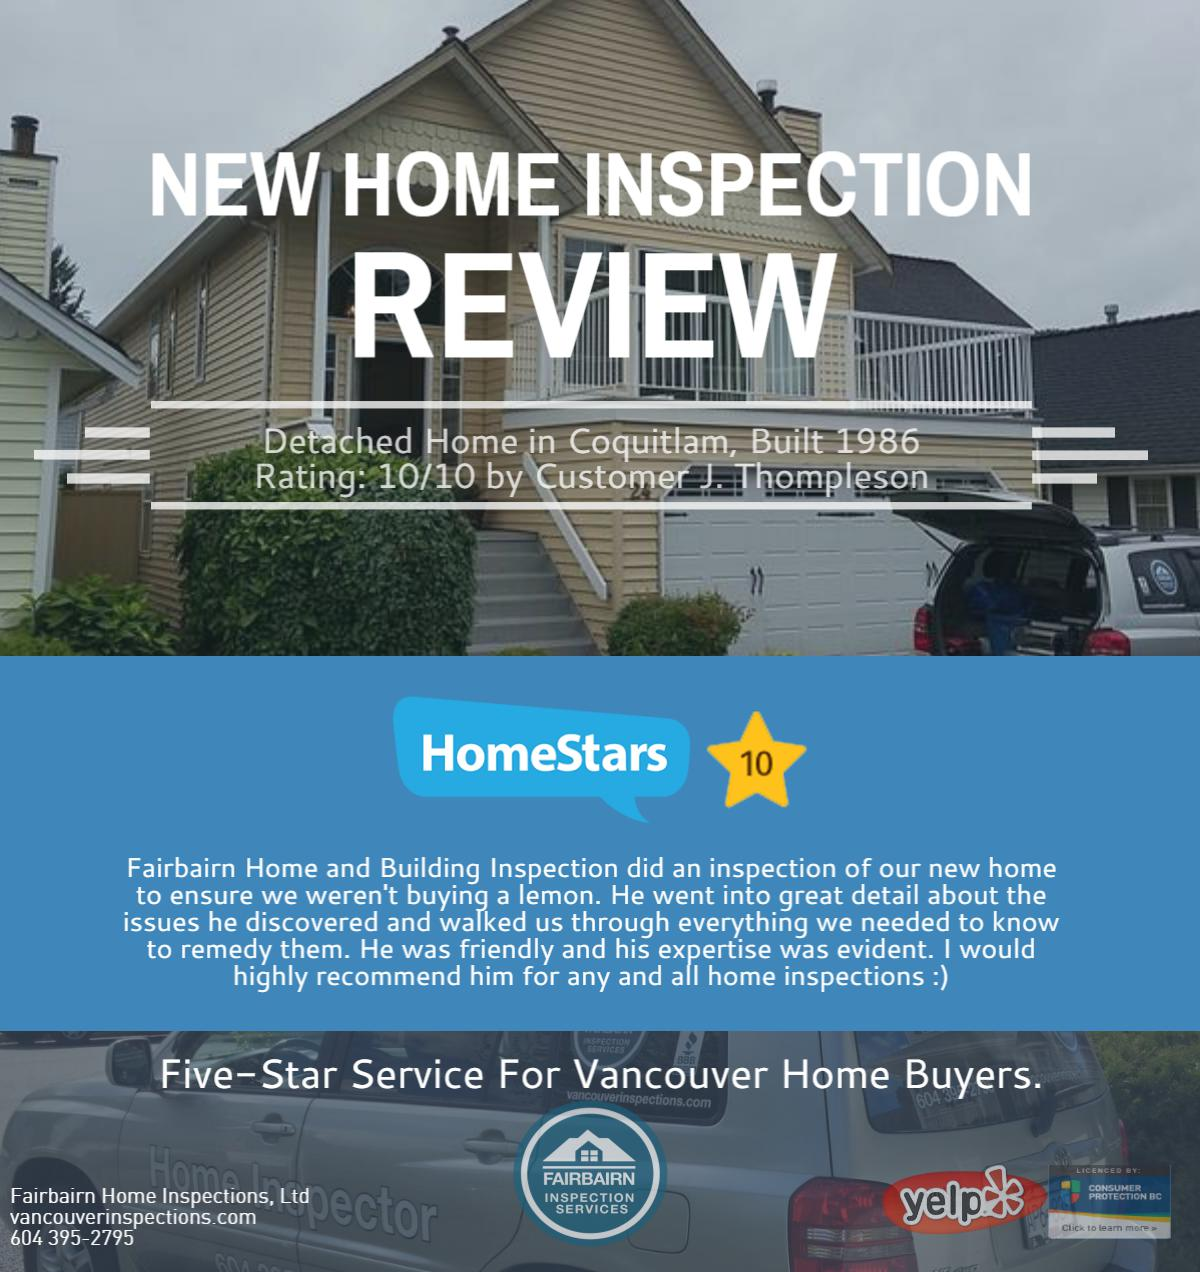 Blog Fairbairn Inspection Services Home Overheated Electrical Wiring Inspector Review Coquitlam